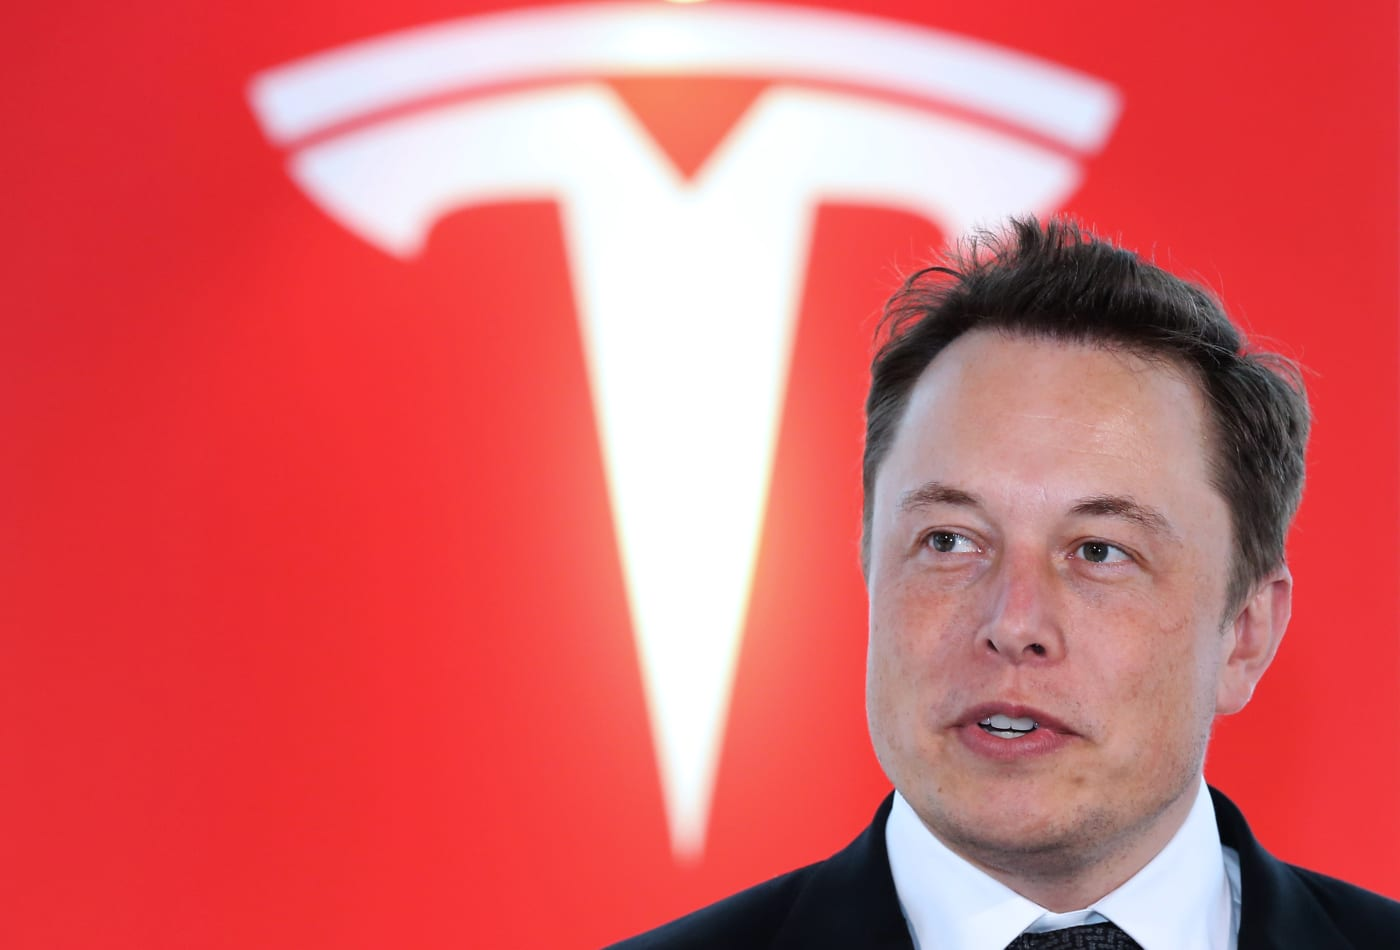 Tesla shares rise, reversing early losses following $2 billion stock offering